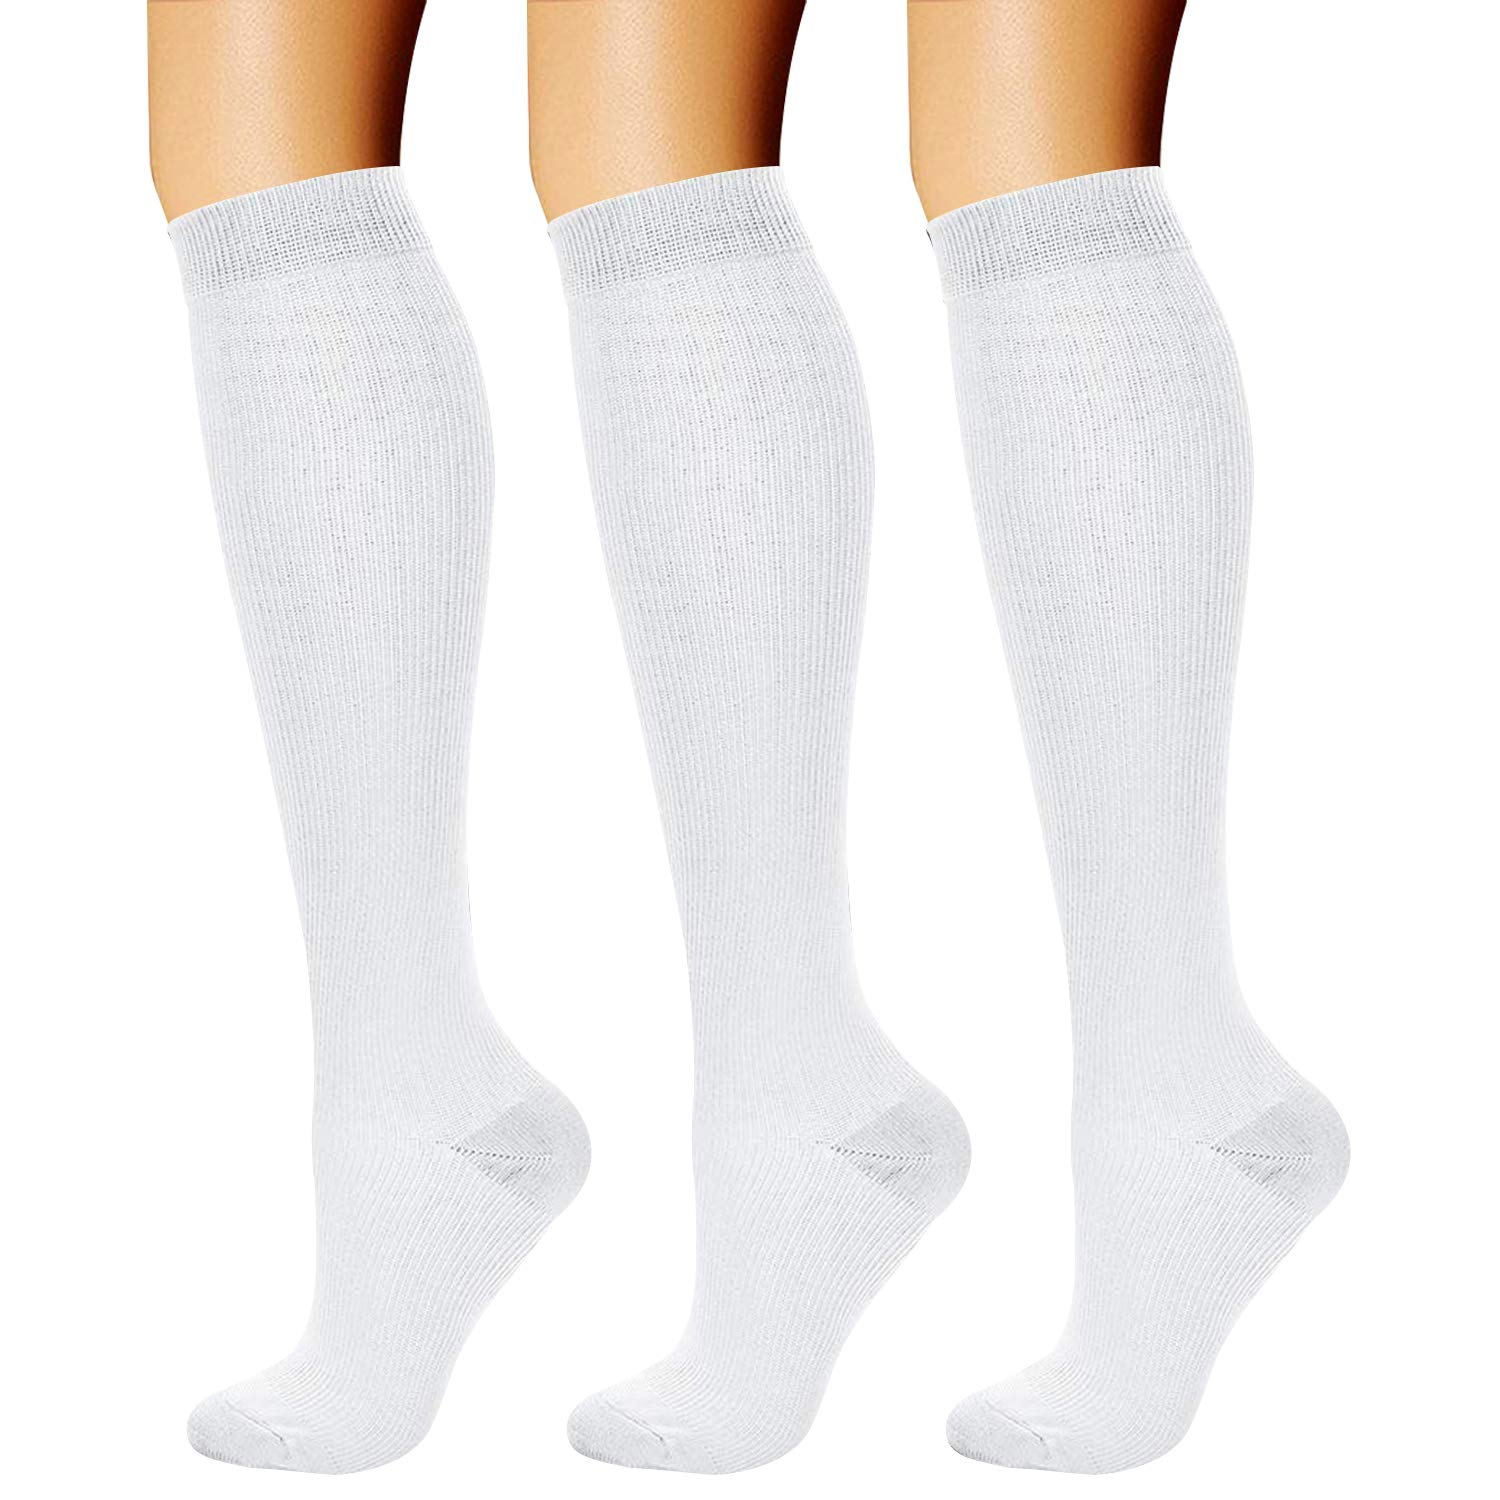 CHARMKING Compression Socks (3 Pairs) 15-20 mmHg is Best Athletic & Medical for Men & Women, Running, Flight, Travel, Nurses, Edema - Boost Performance, Blood Circulation & Recovery (S/M, White) by CHARMKING